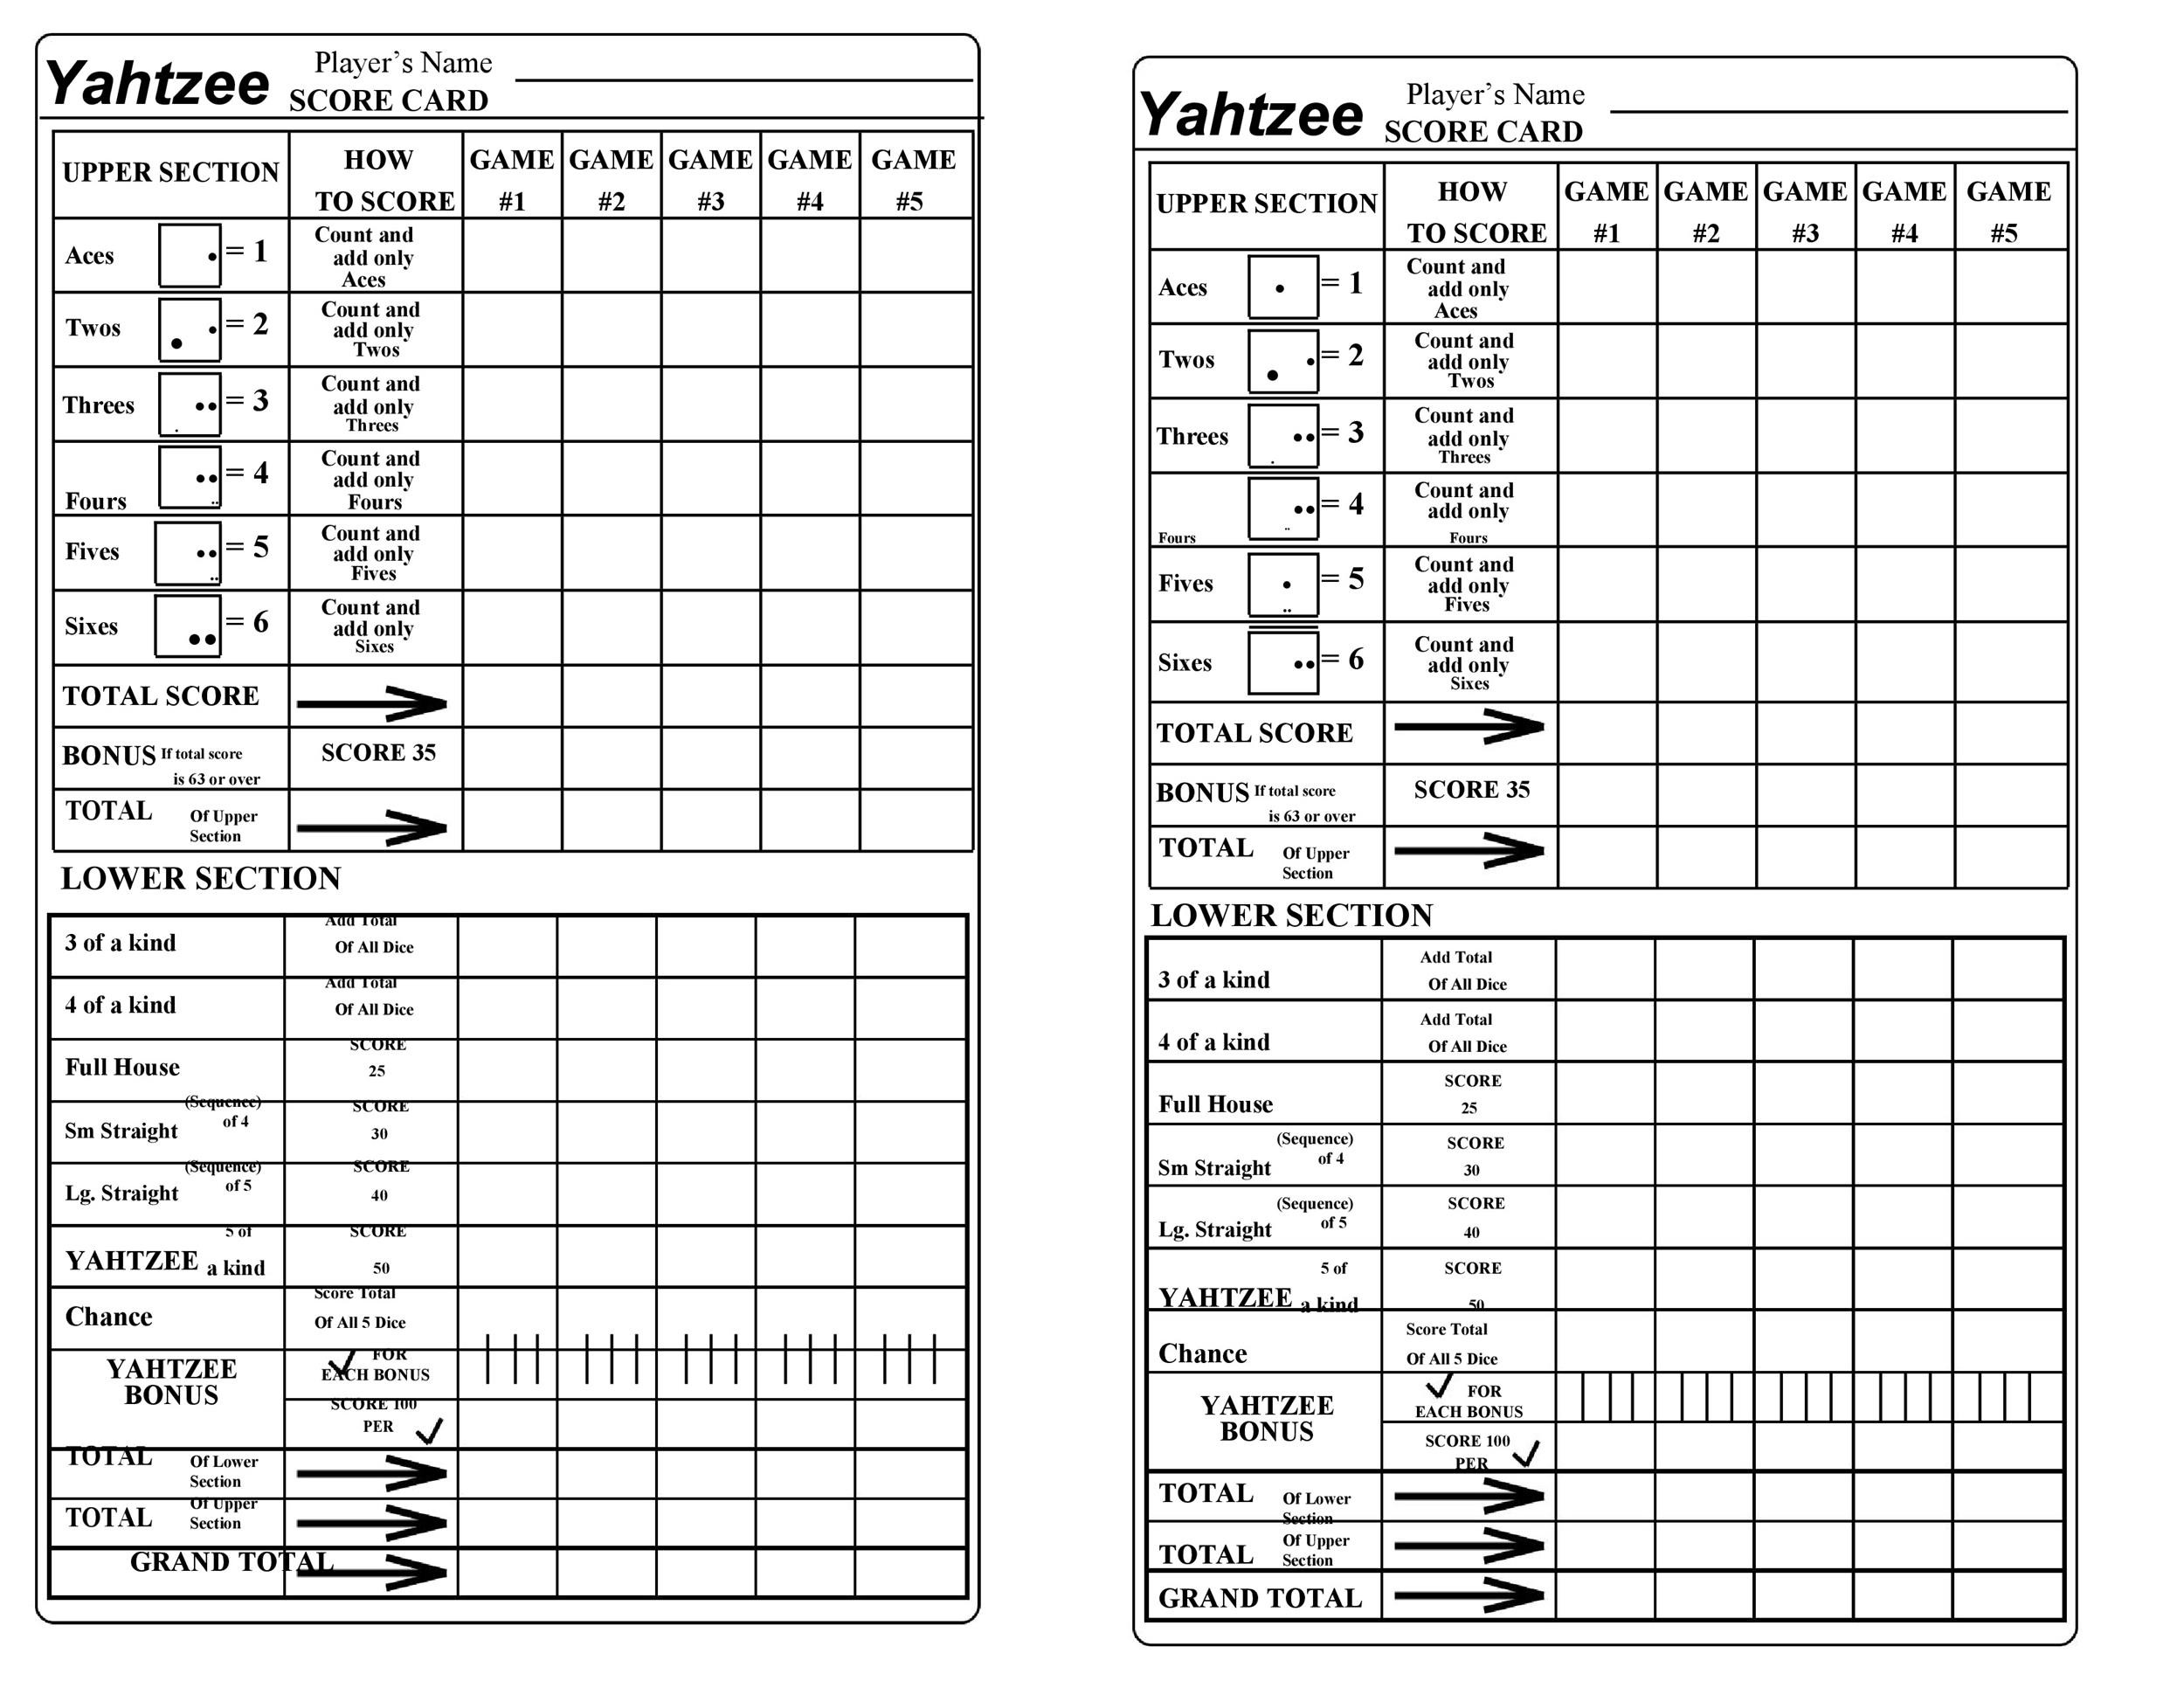 photo about Free Printable Yahtzee Score Cards referred to as 28 Printable Yahtzee Rating Sheets Playing cards (101% No cost) ᐅ